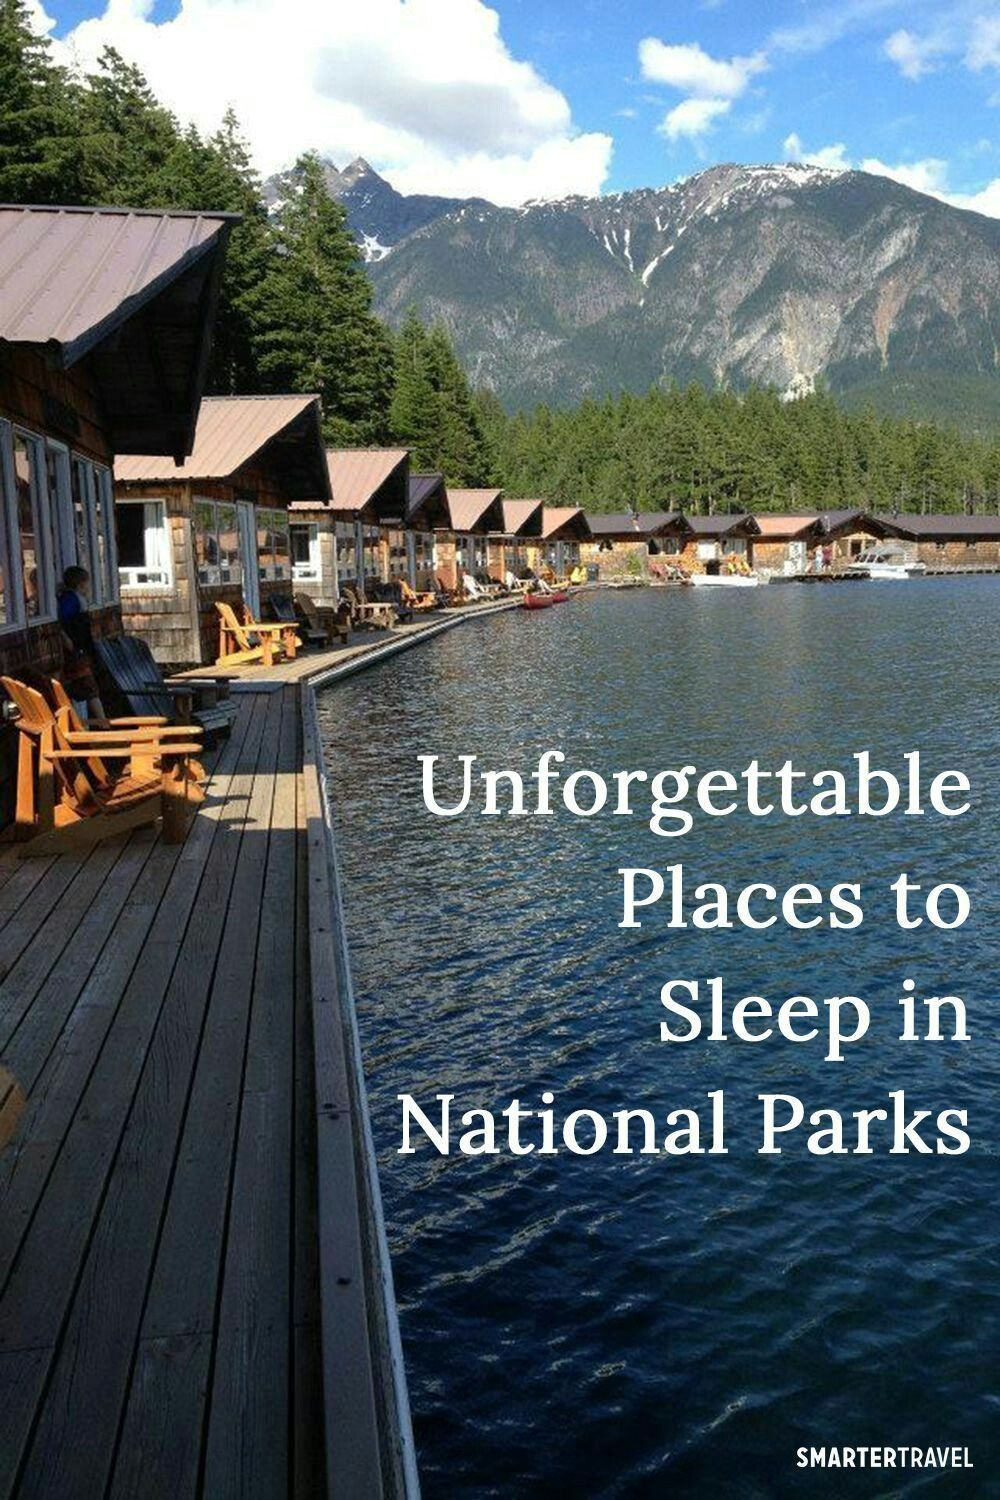 united states national park vacation ideas